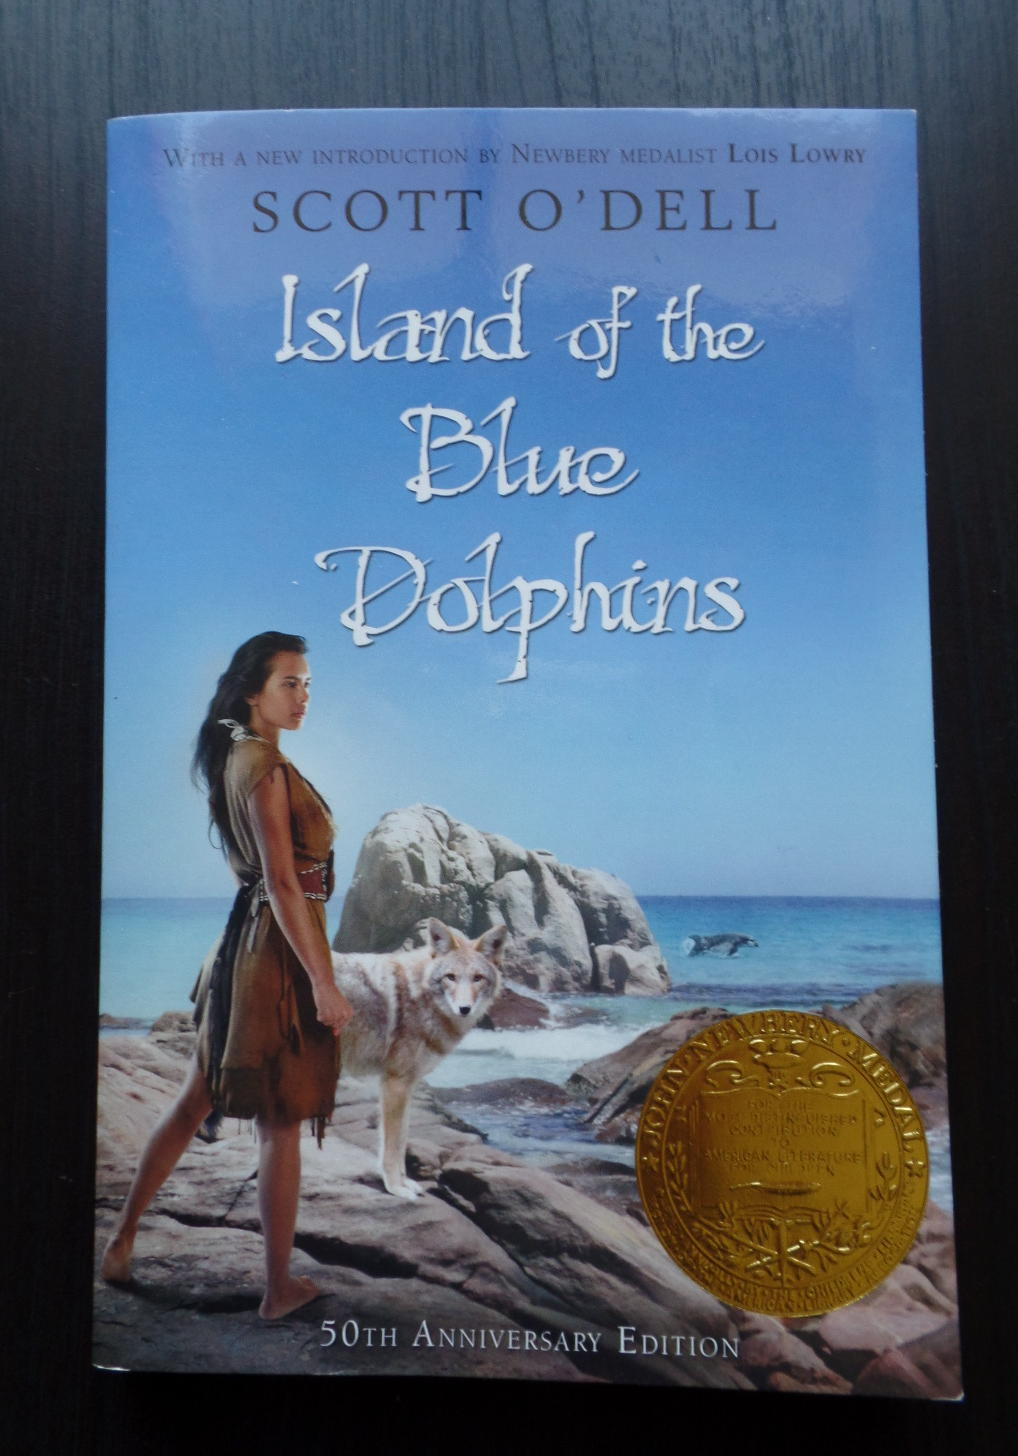 reading island of the blue dolphins for the first time